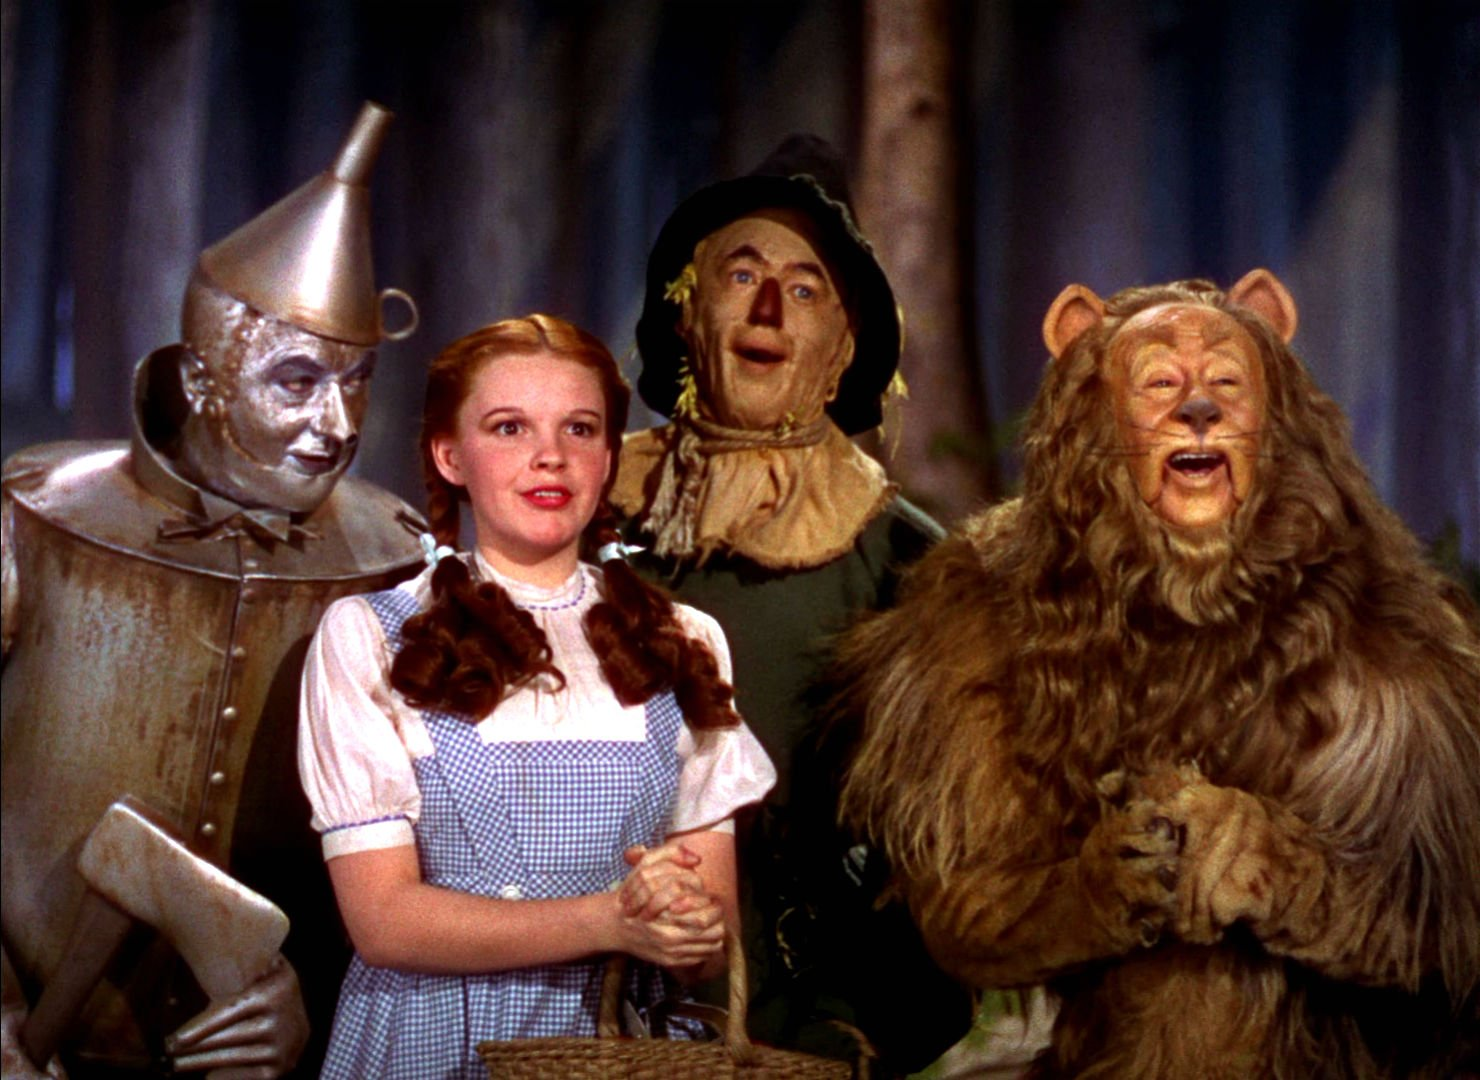 Wizard of oz pictures wallpapers 94 wallpapers hd wallpapers - The wizard of oz hd ...